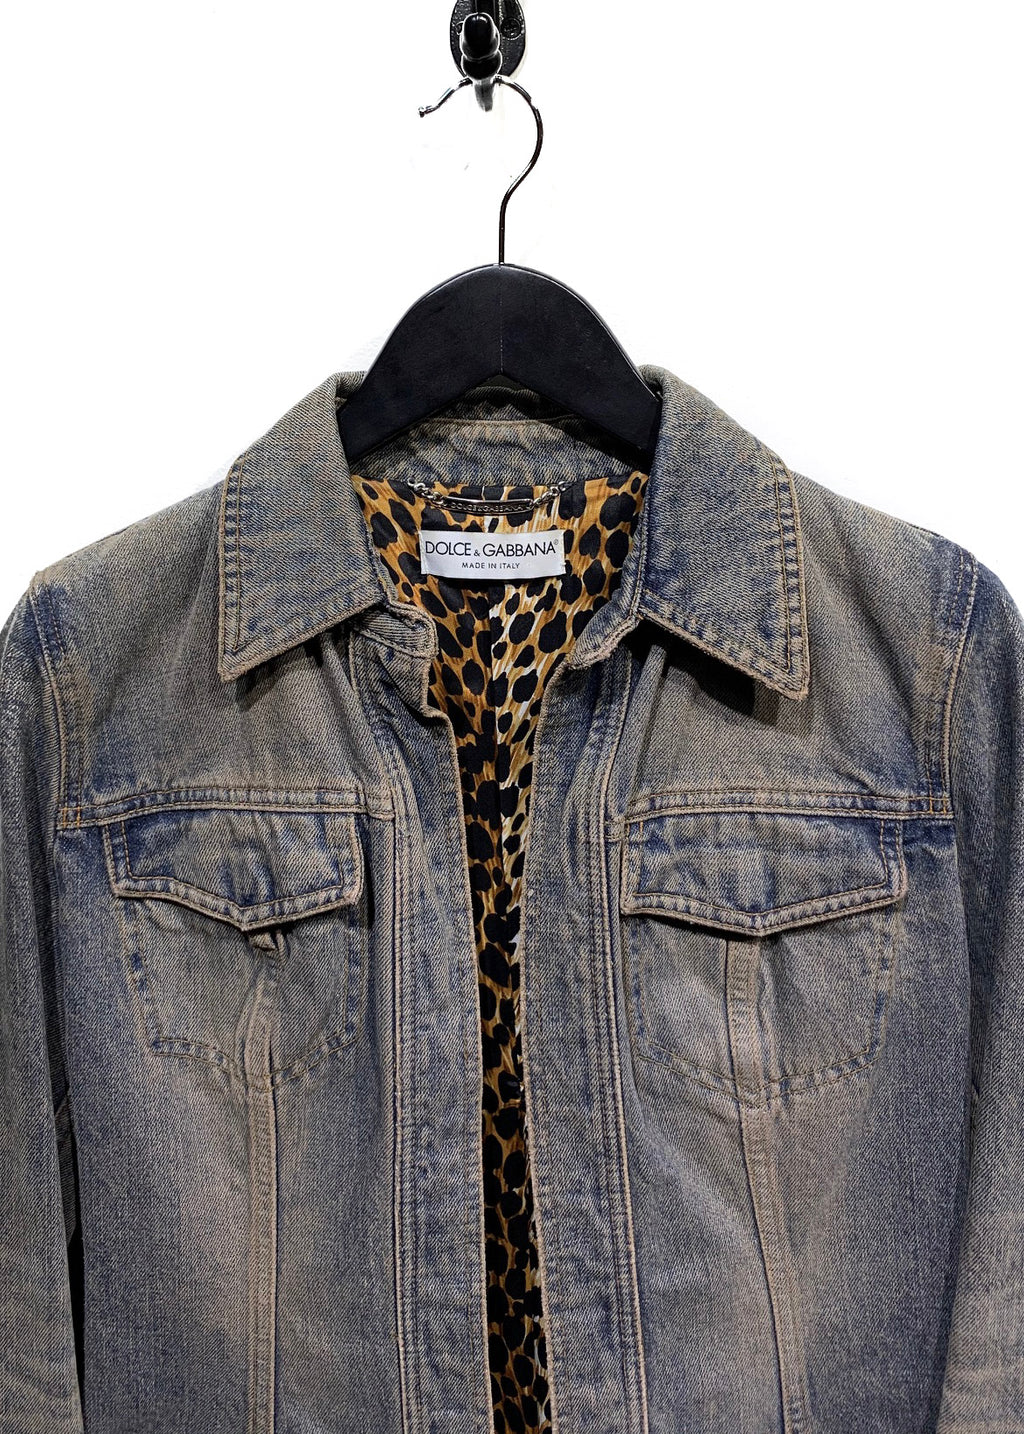 Dolce & Gabbana Washed Out Denim Jacket